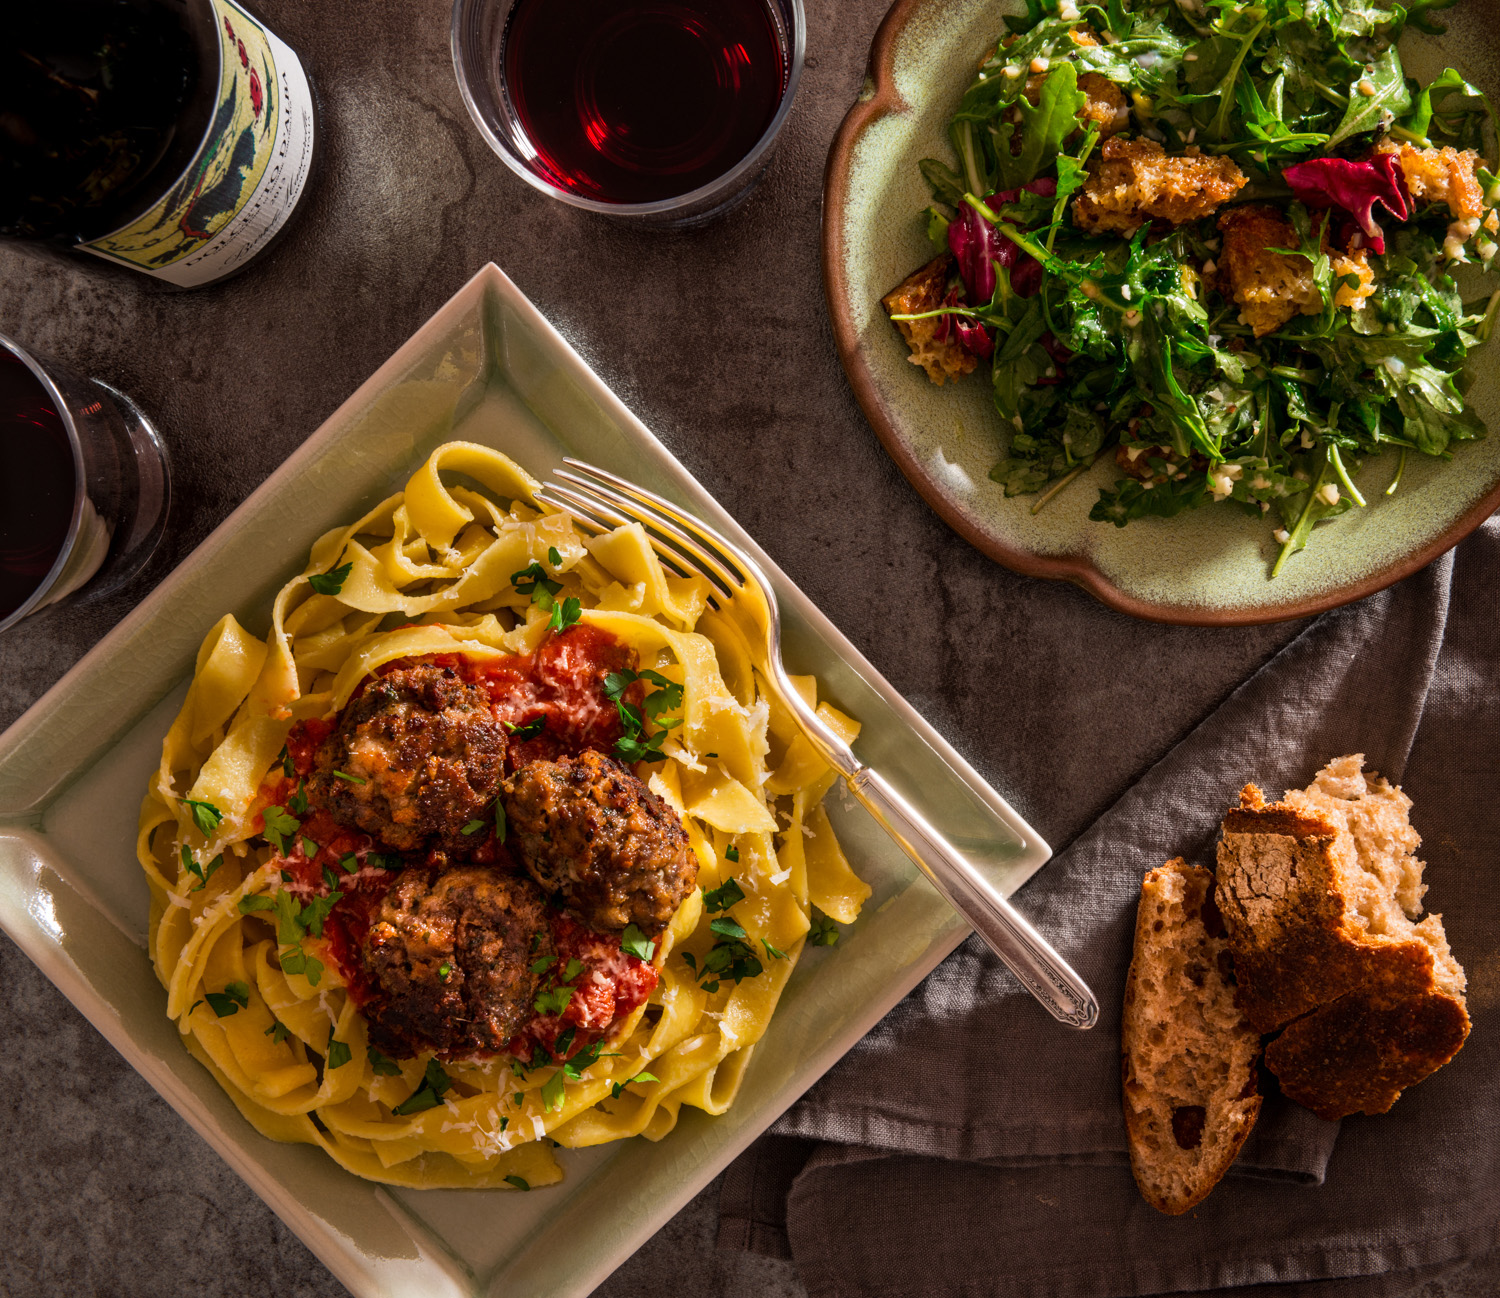 In the spirit of Sunday Supper  : Handmade semolina pasta, beef and pork meatballs, red sauce, parsley, Parmigiano : Kale Caesar salad, rustic croutons, Parmigiano : Paired with Bartolo Mascarello's Dolcetto d'Alba : Other recommended pairings include Chianti and Sicilian reds